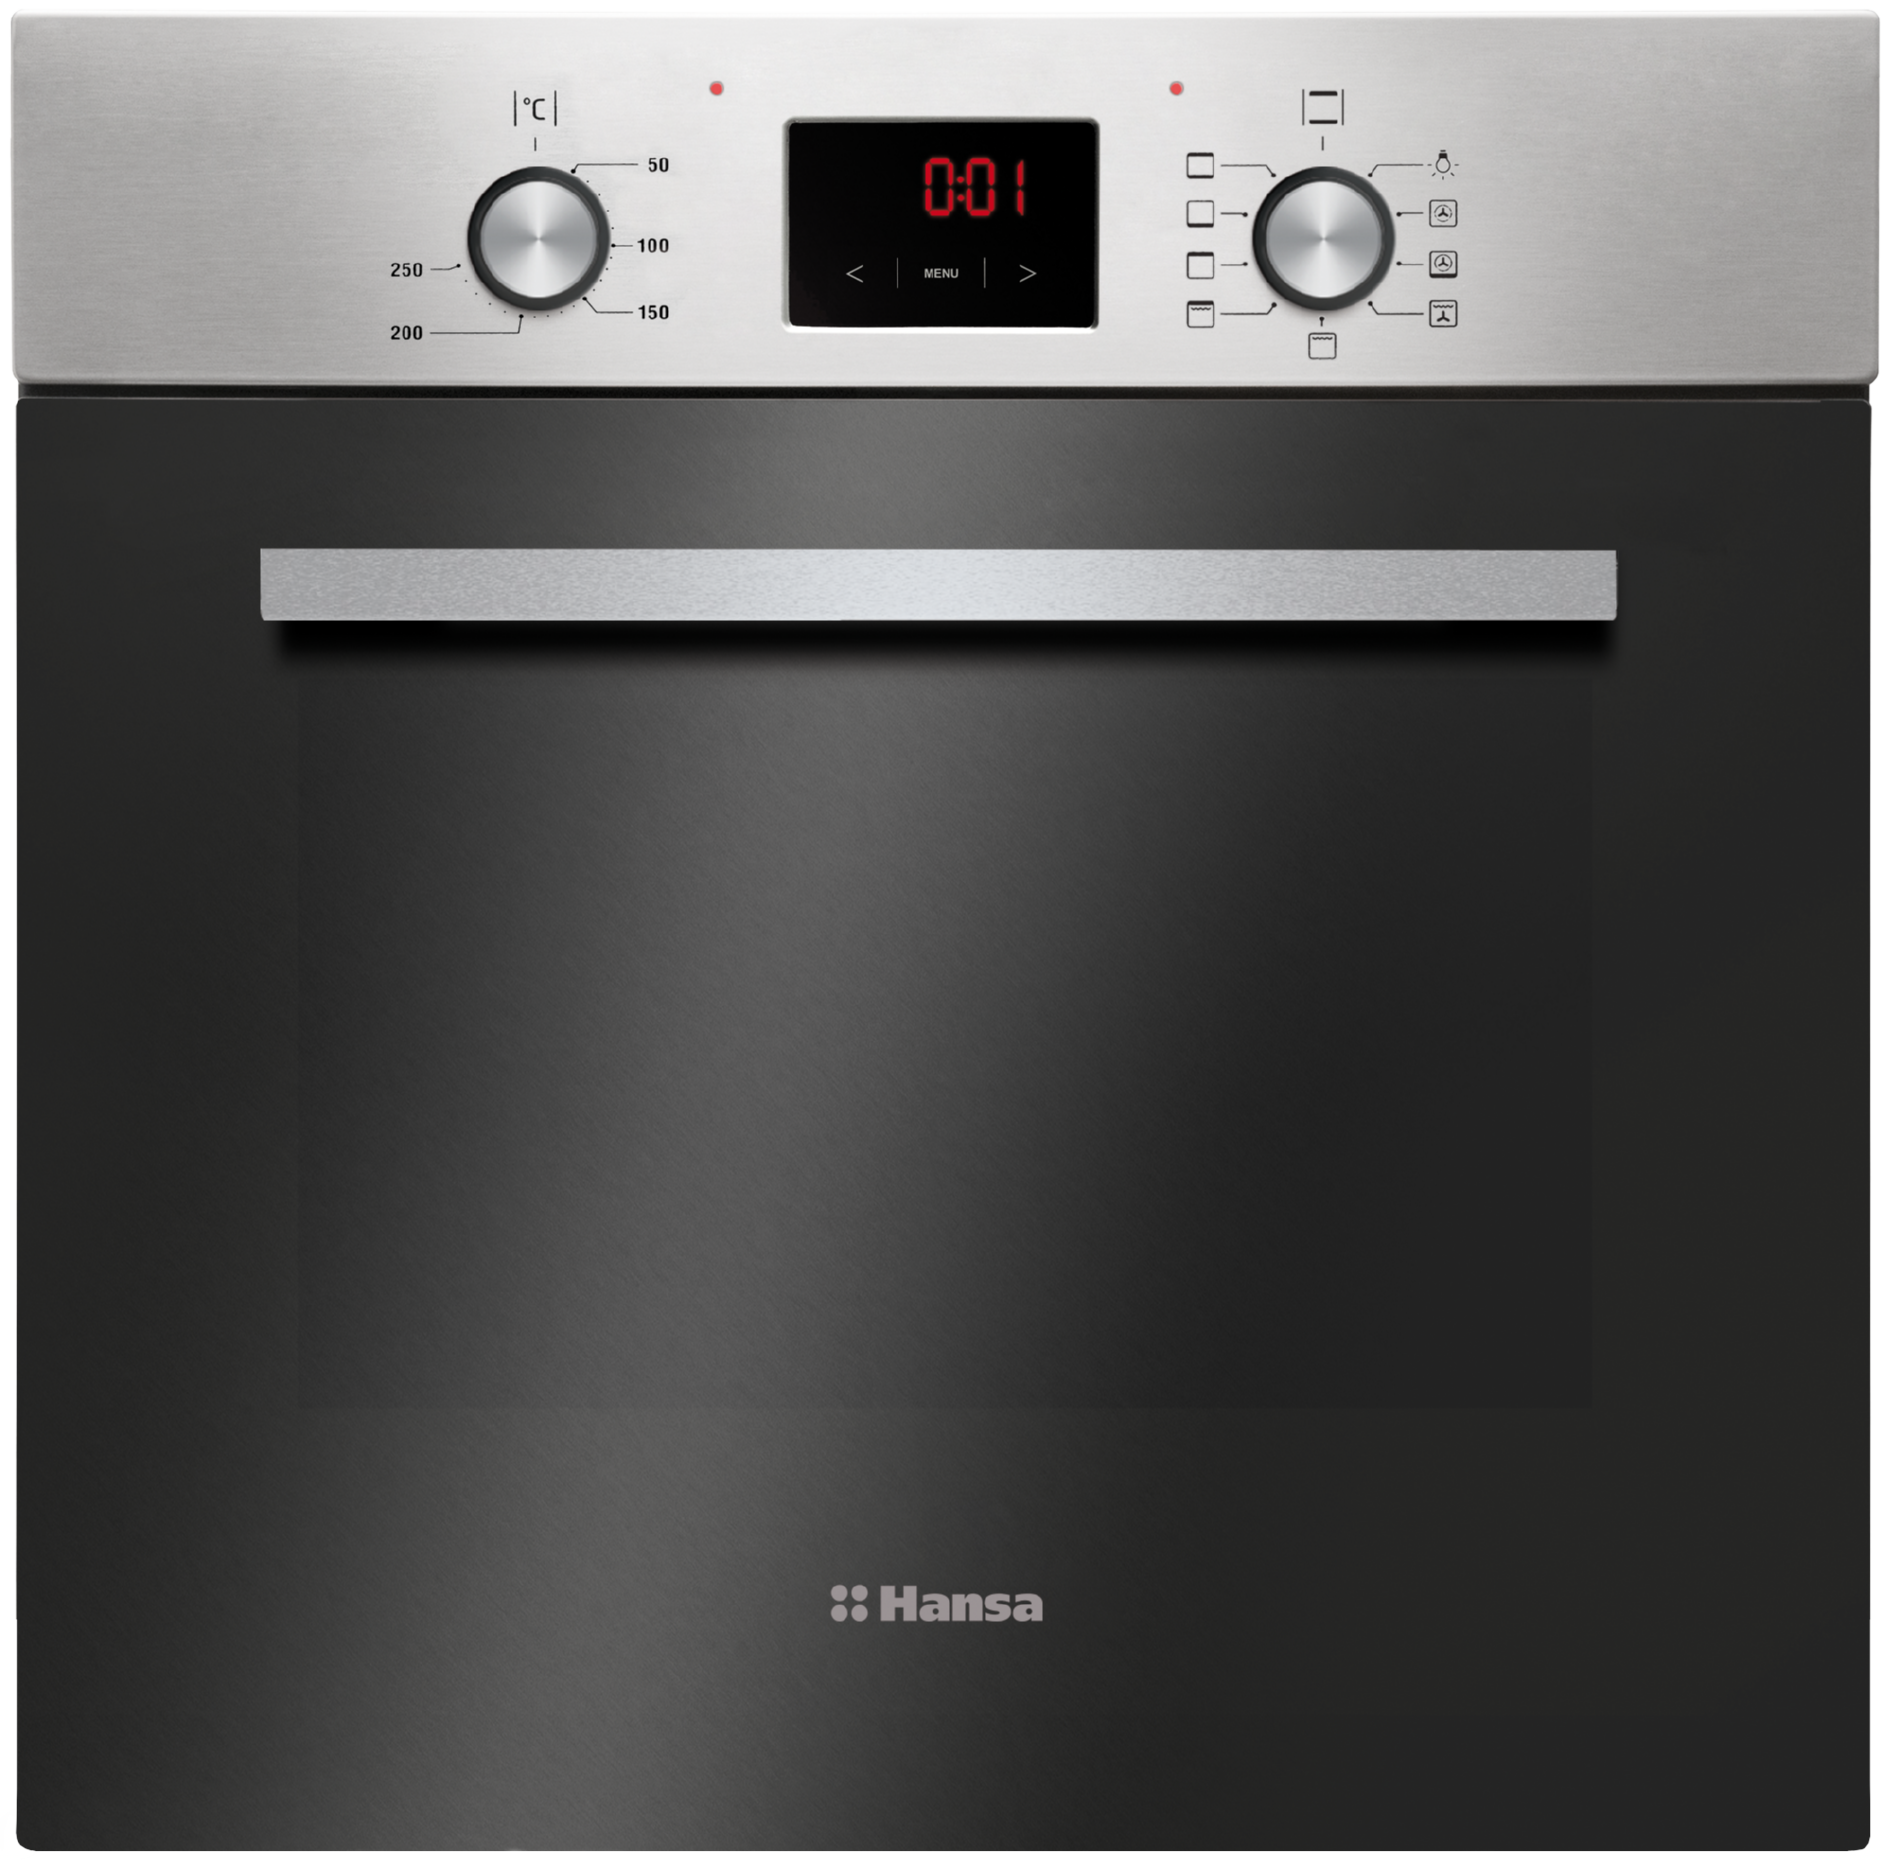 How do I clean the oven of burnt fat at home